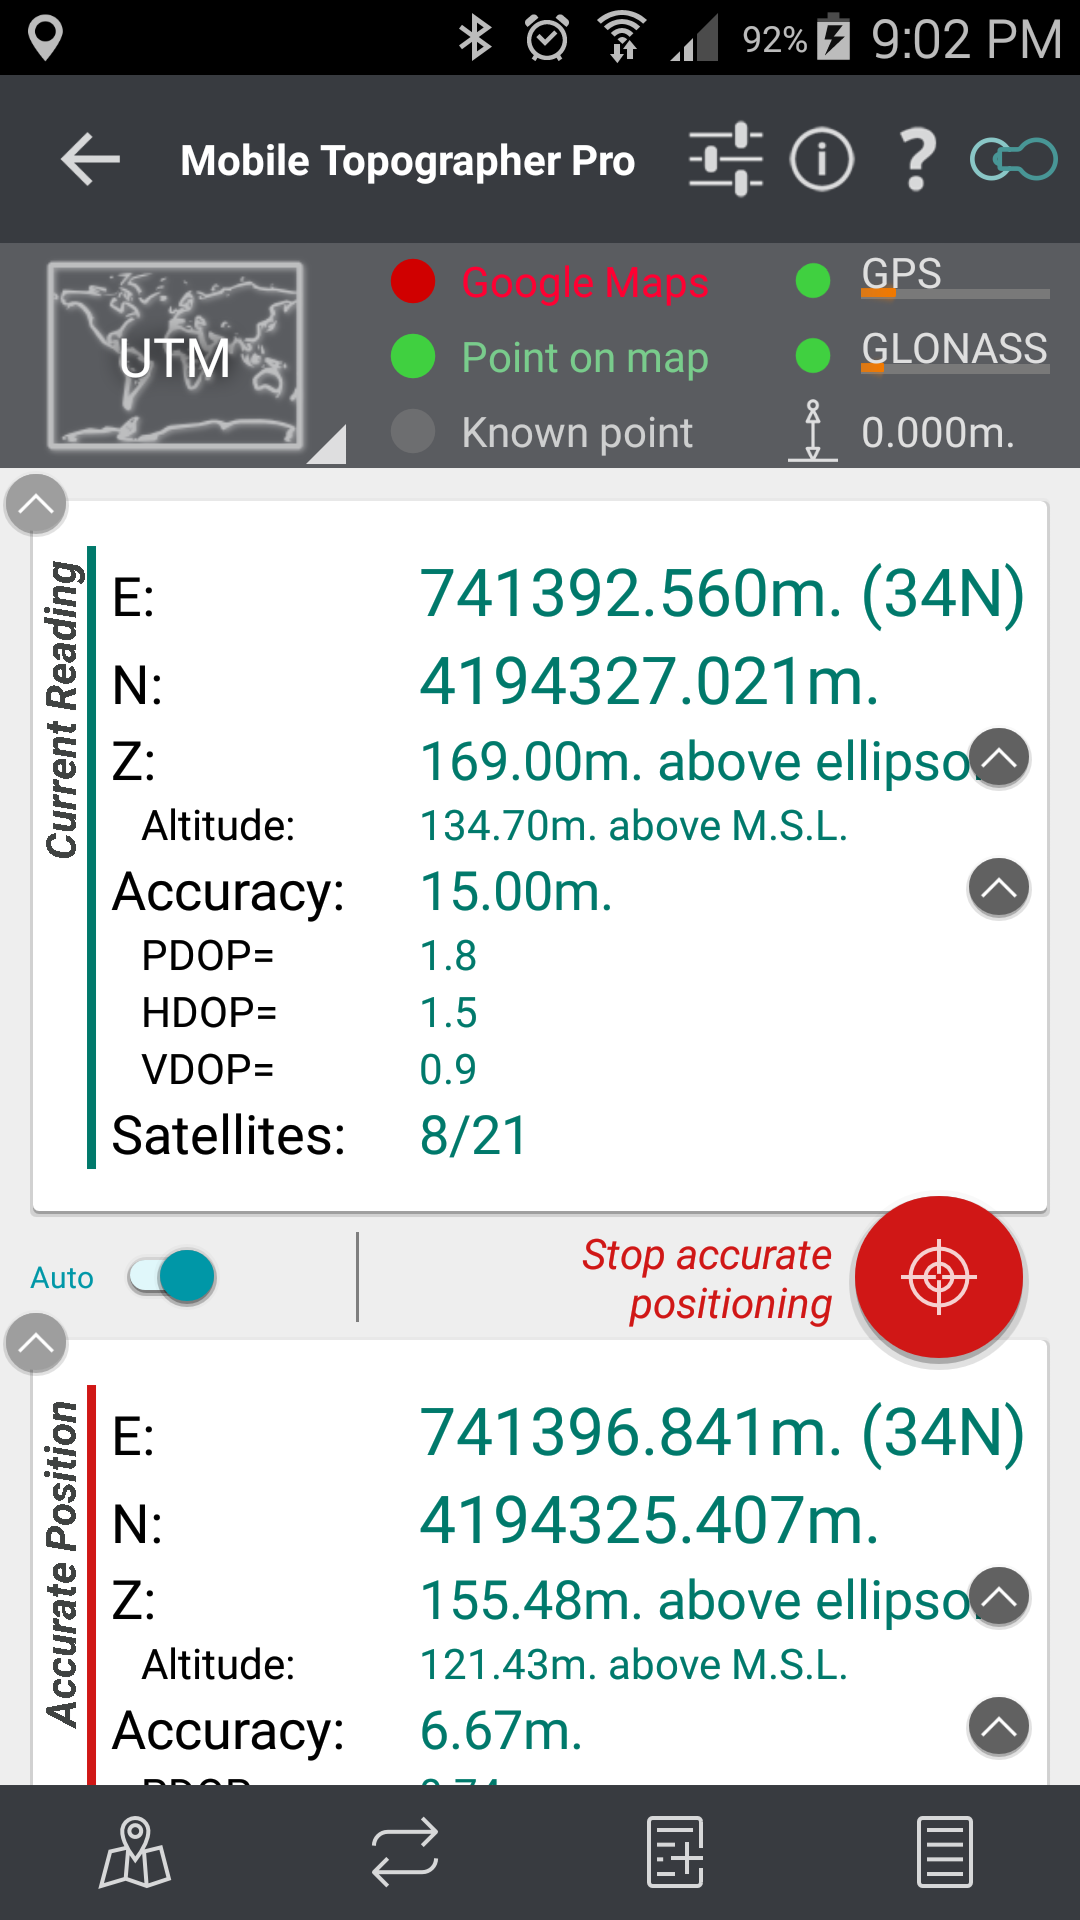 Mobile Topographer Pro – applicality